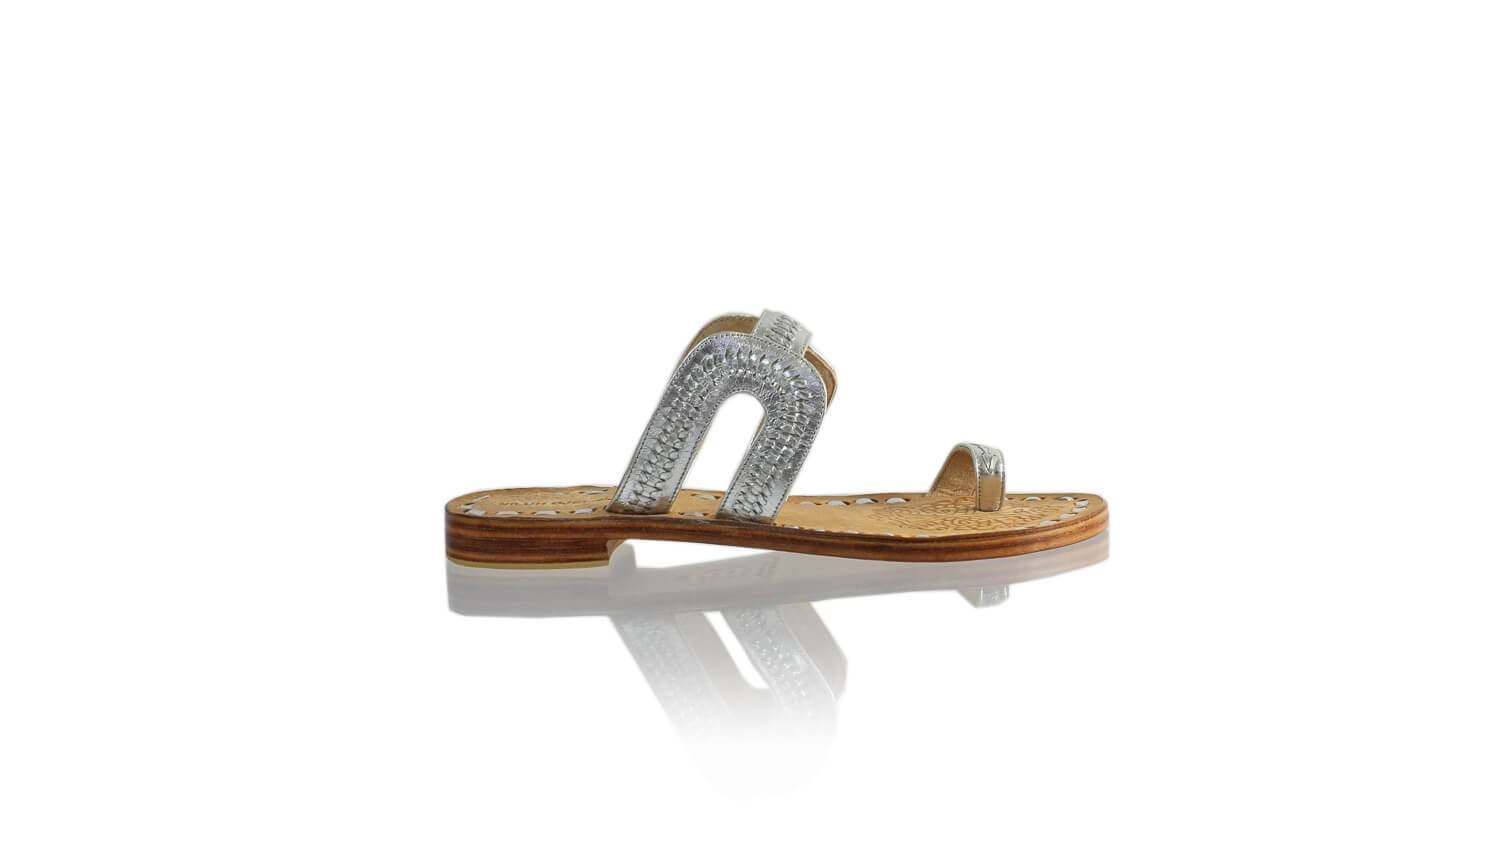 Leather-shoes-Andy 20mm Flat - Silver-sandals flat-NILUH DJELANTIK-NILUH DJELANTIK